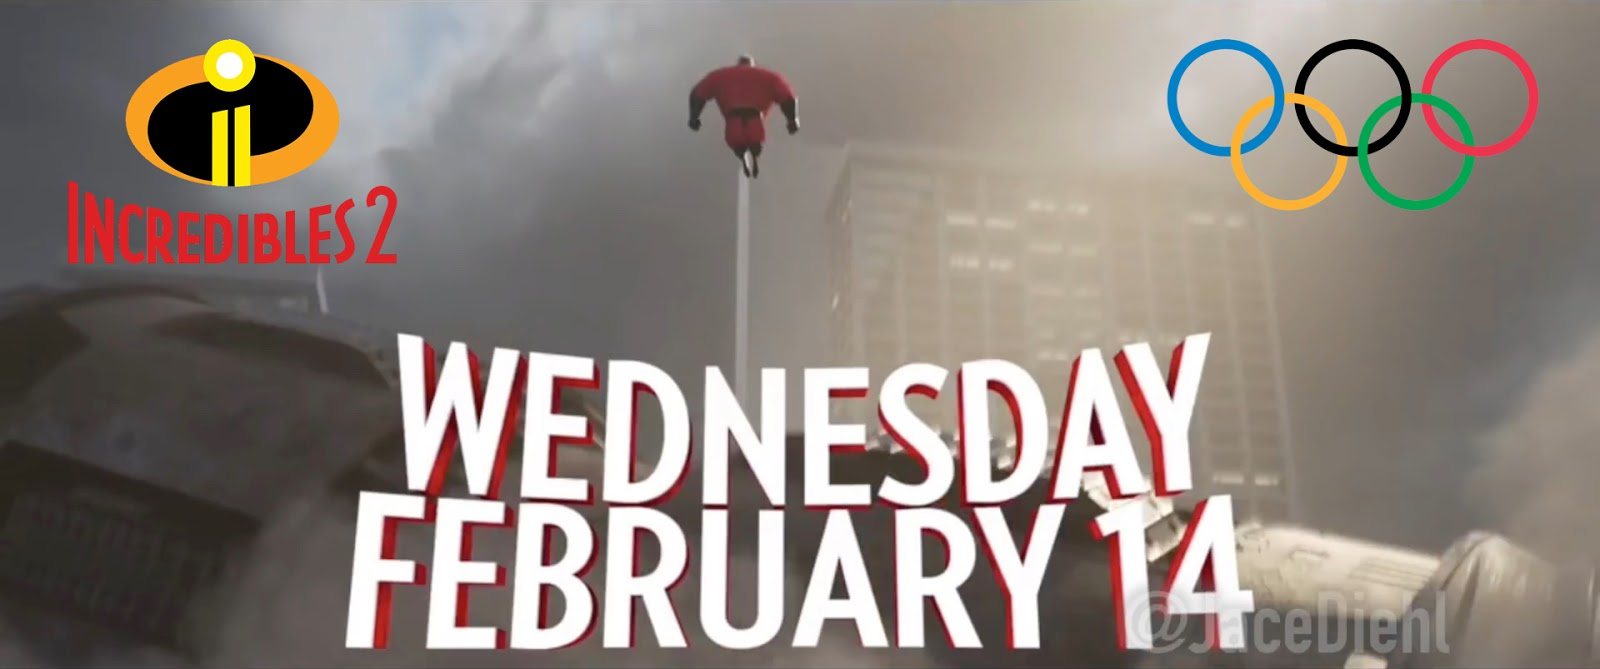 Special Look At Incredibles 2 Coming February 14 During